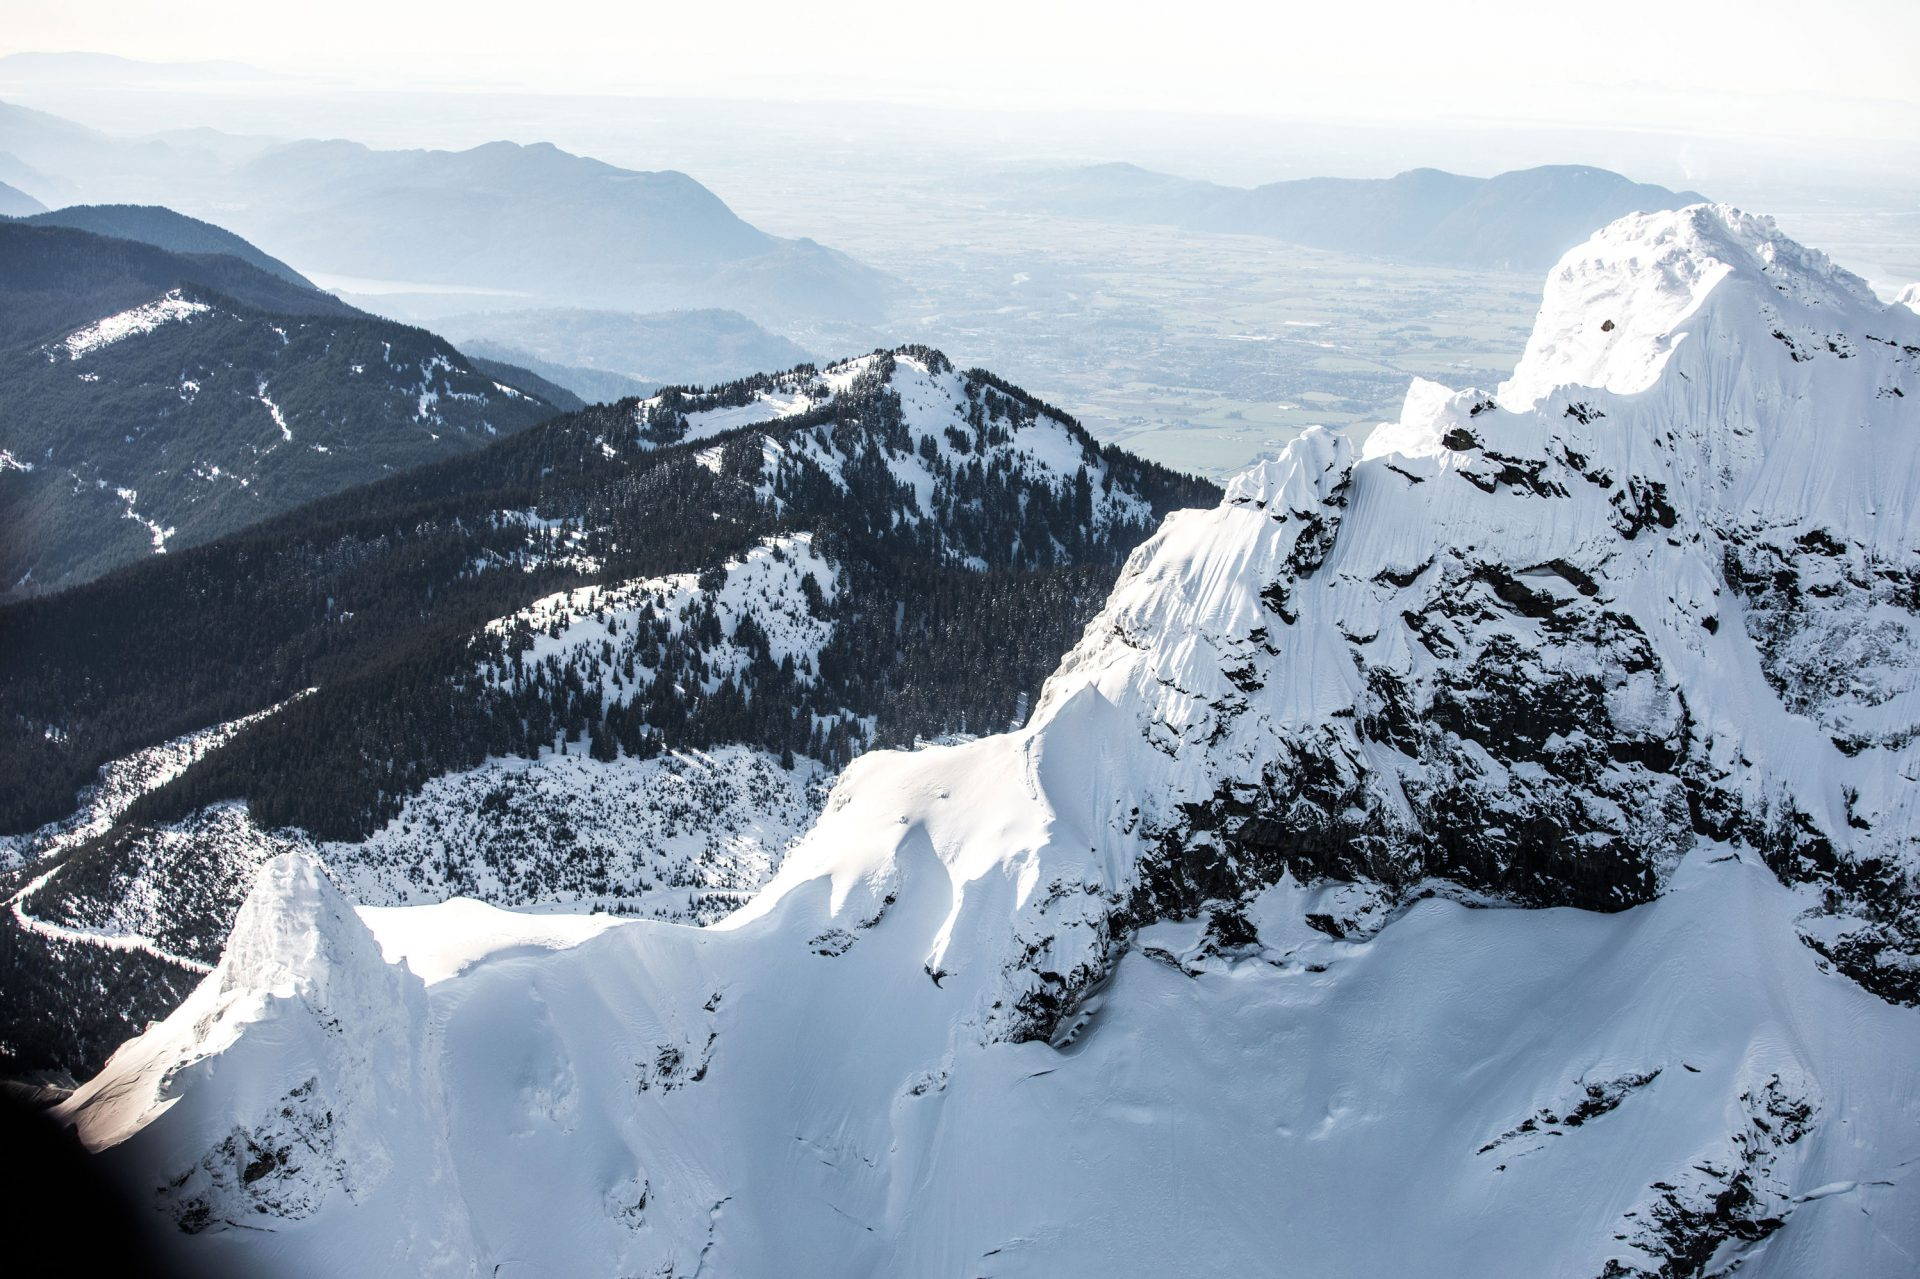 Snowy mountain peak viewed from the Librico Helicopter with the Fraser Valley in the background